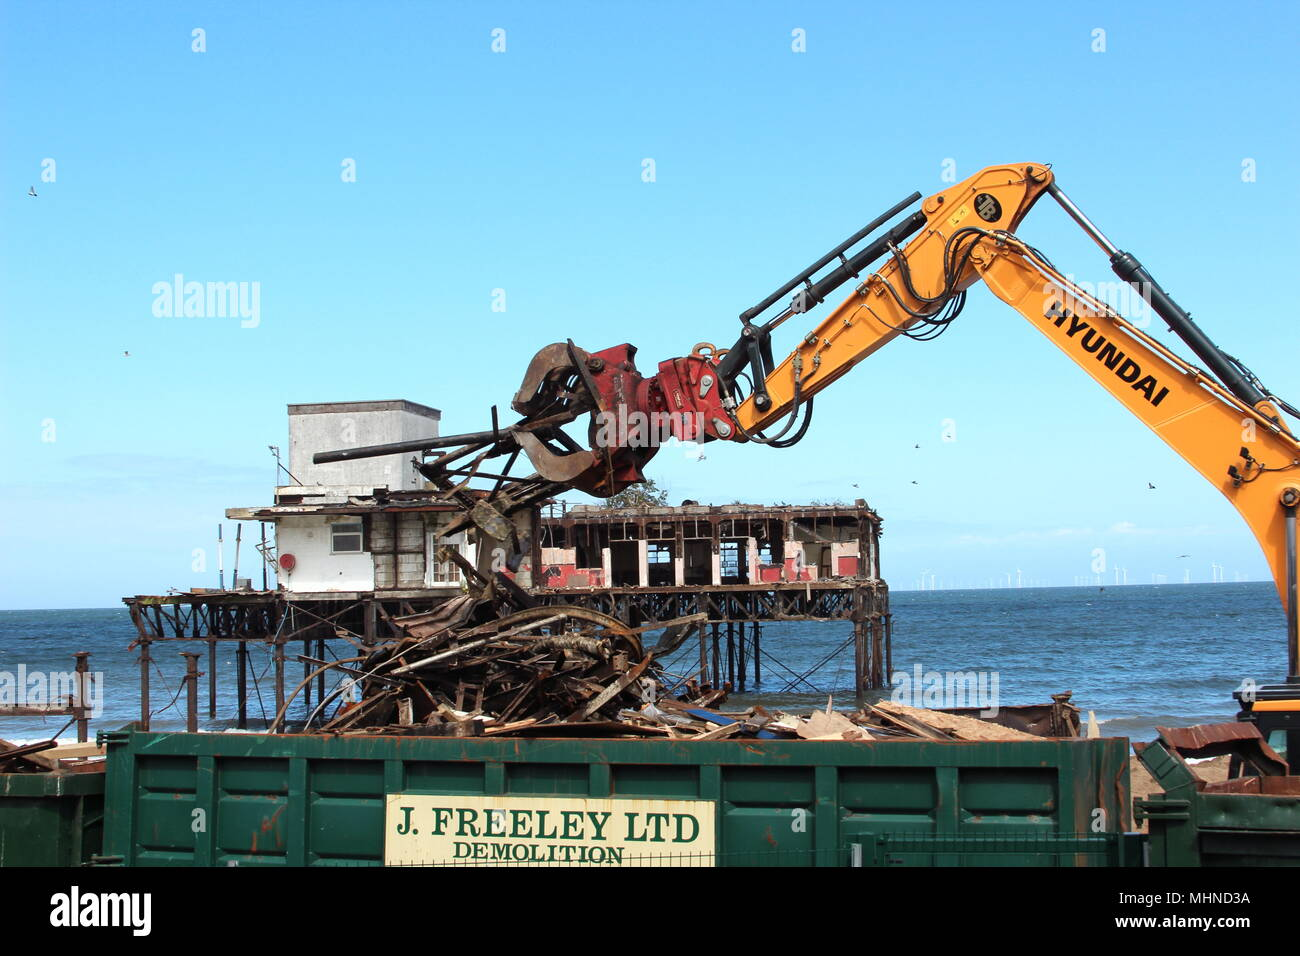 The Demolition of Colwyn Bay Victoria Pier - Stock Image